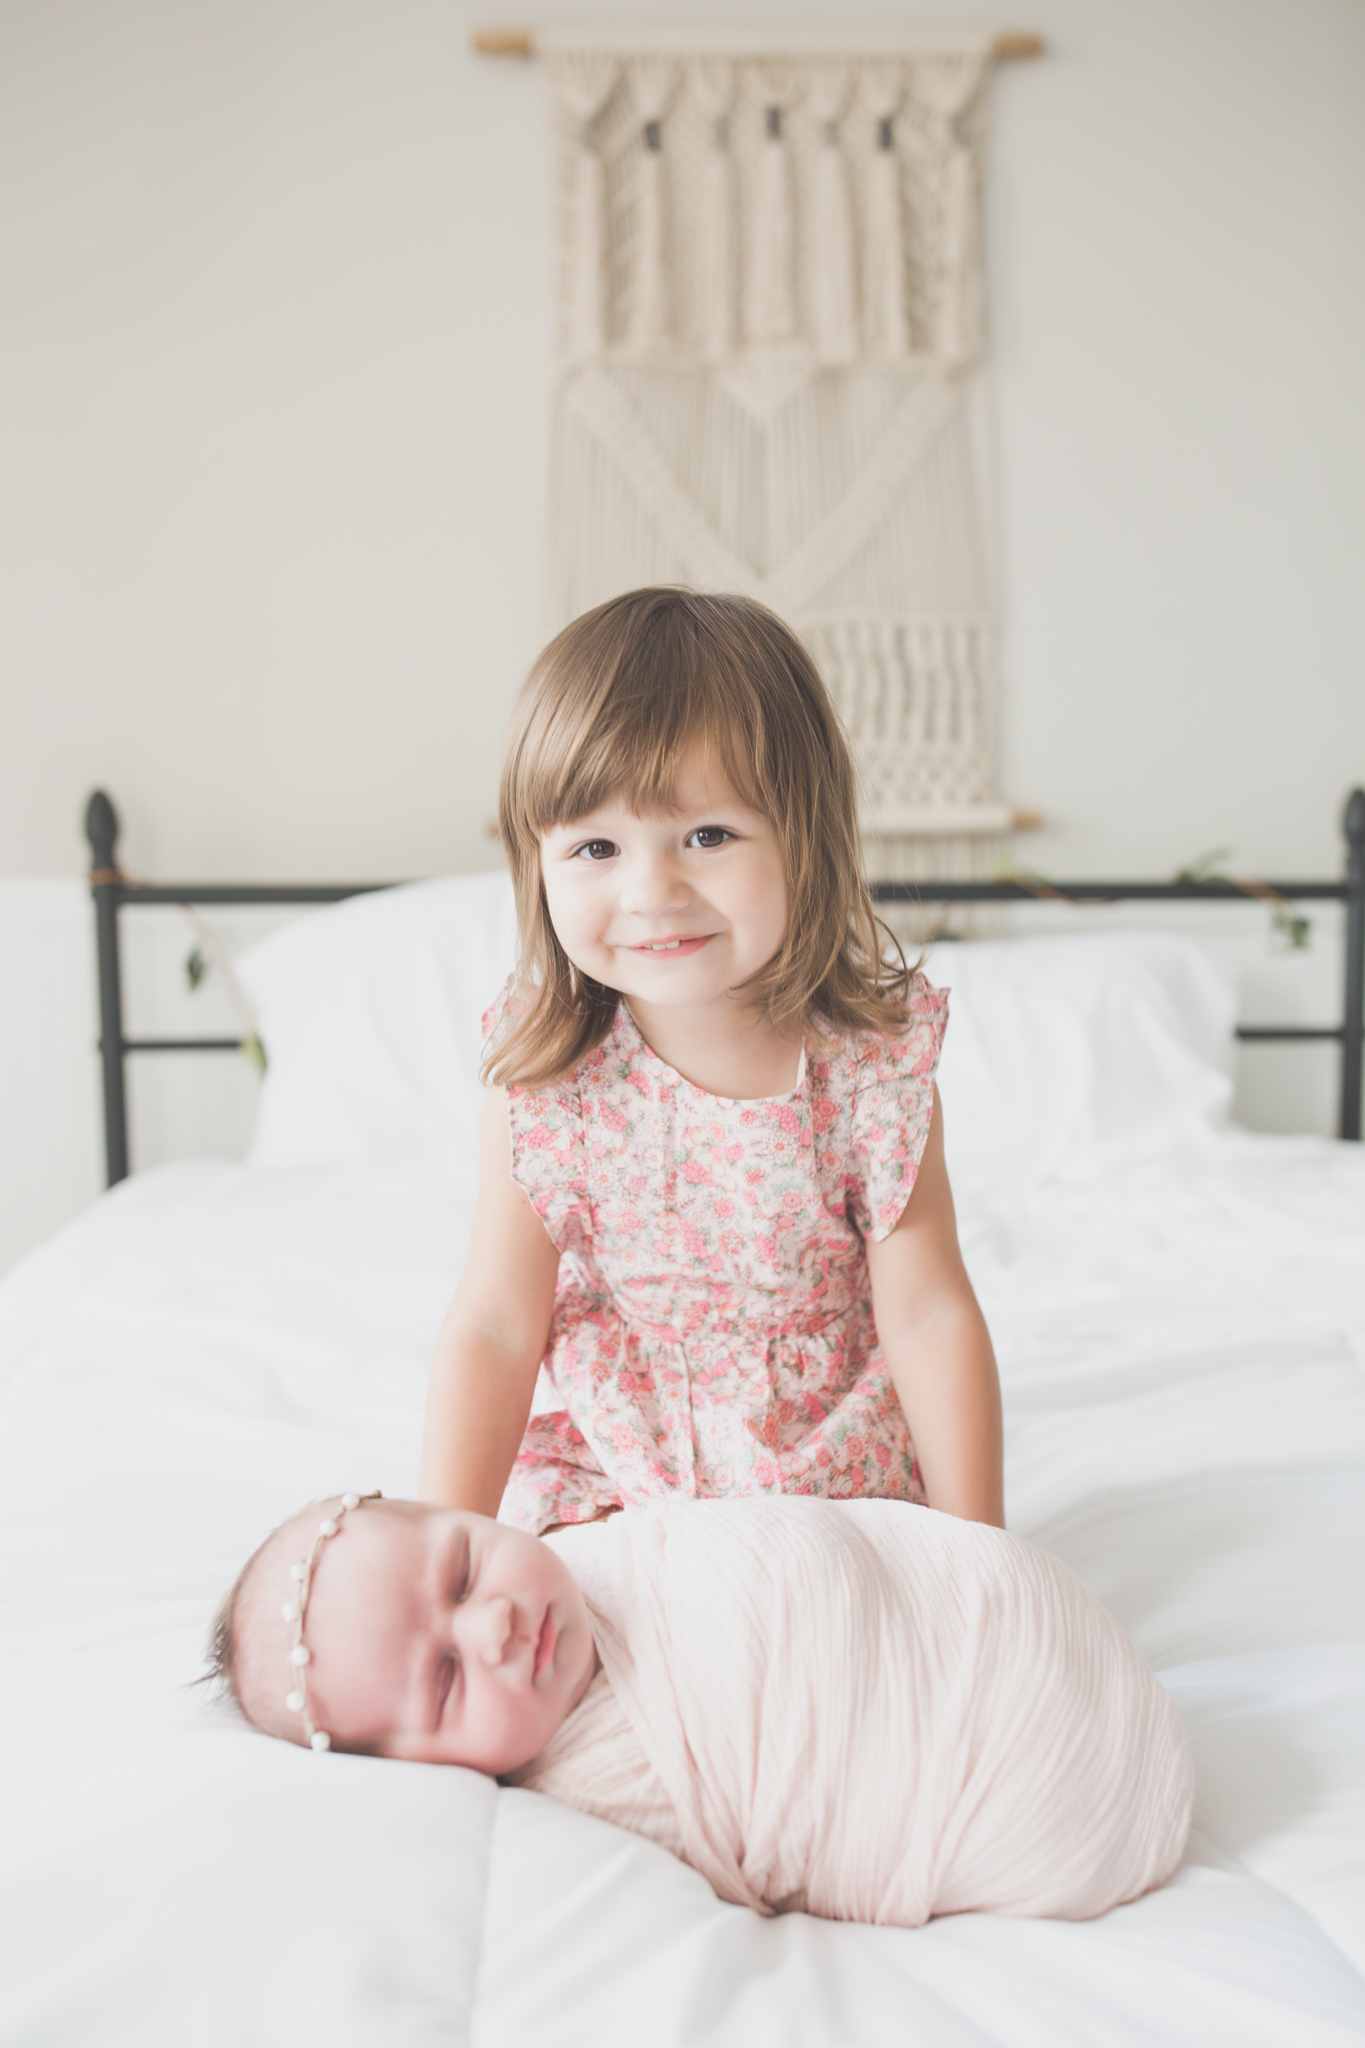 Sibling photos Newborn session photographer lifestyle studio - Cara Peterson Photography Rockford IL-3-14.jpg